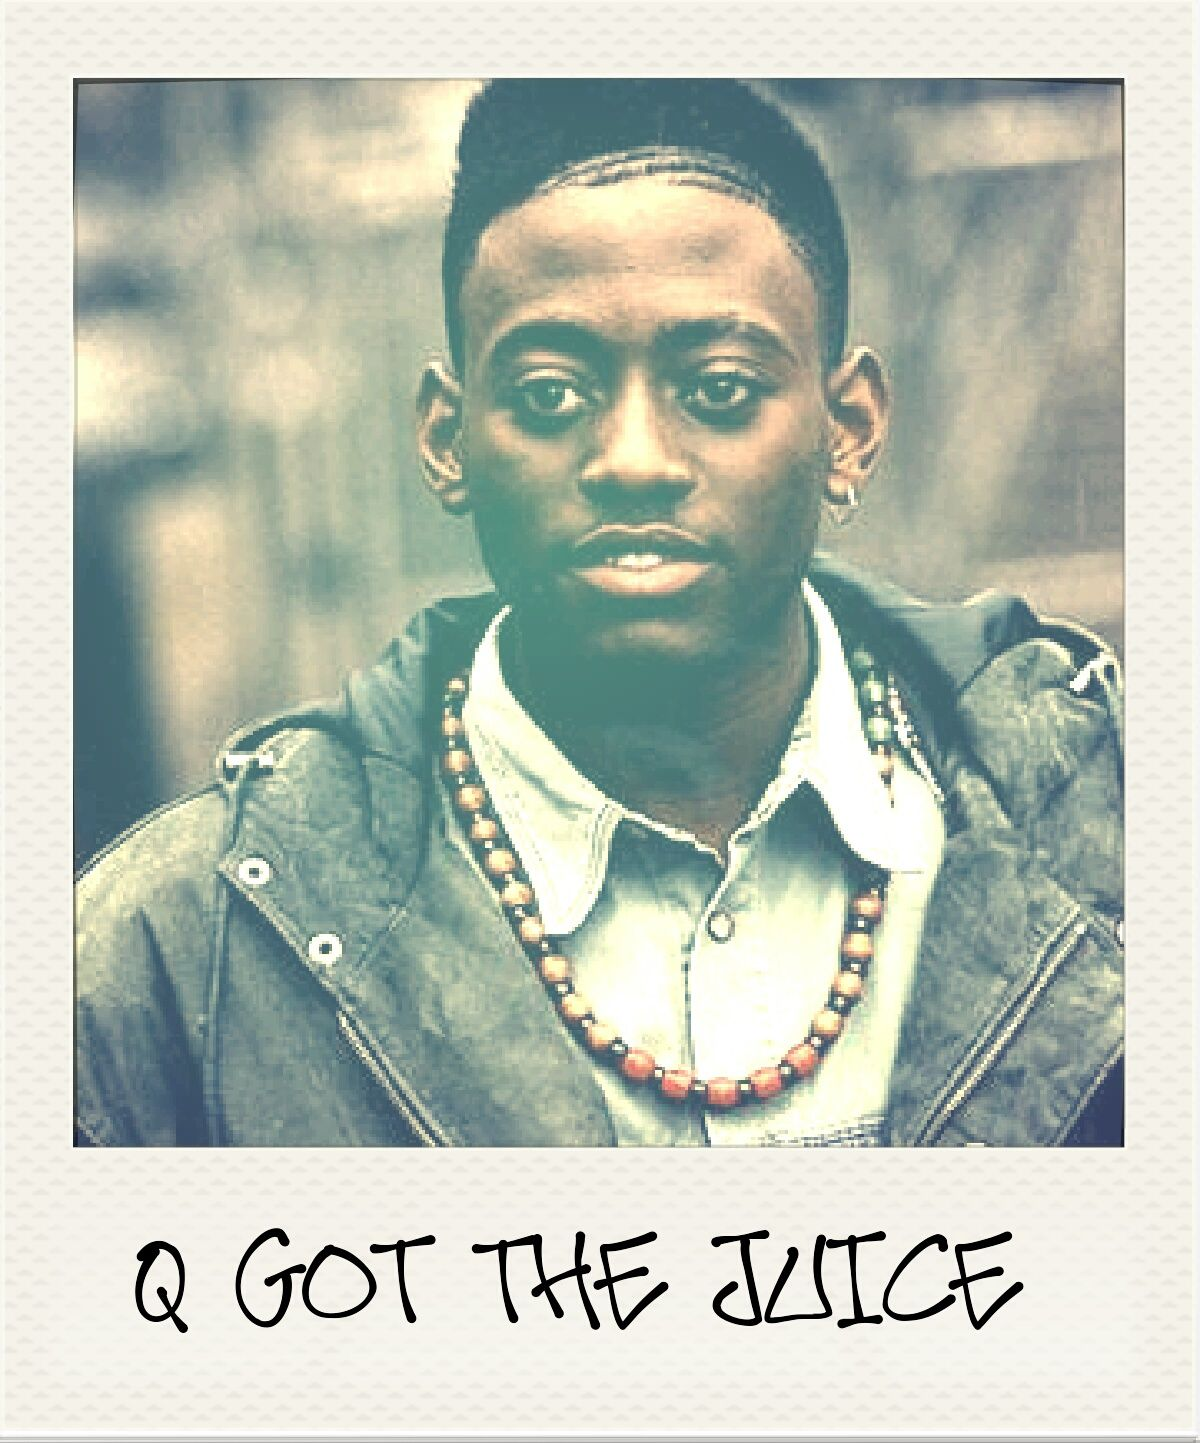 Omar Epps From Juice One Of My Favorite Movies Of All Time What